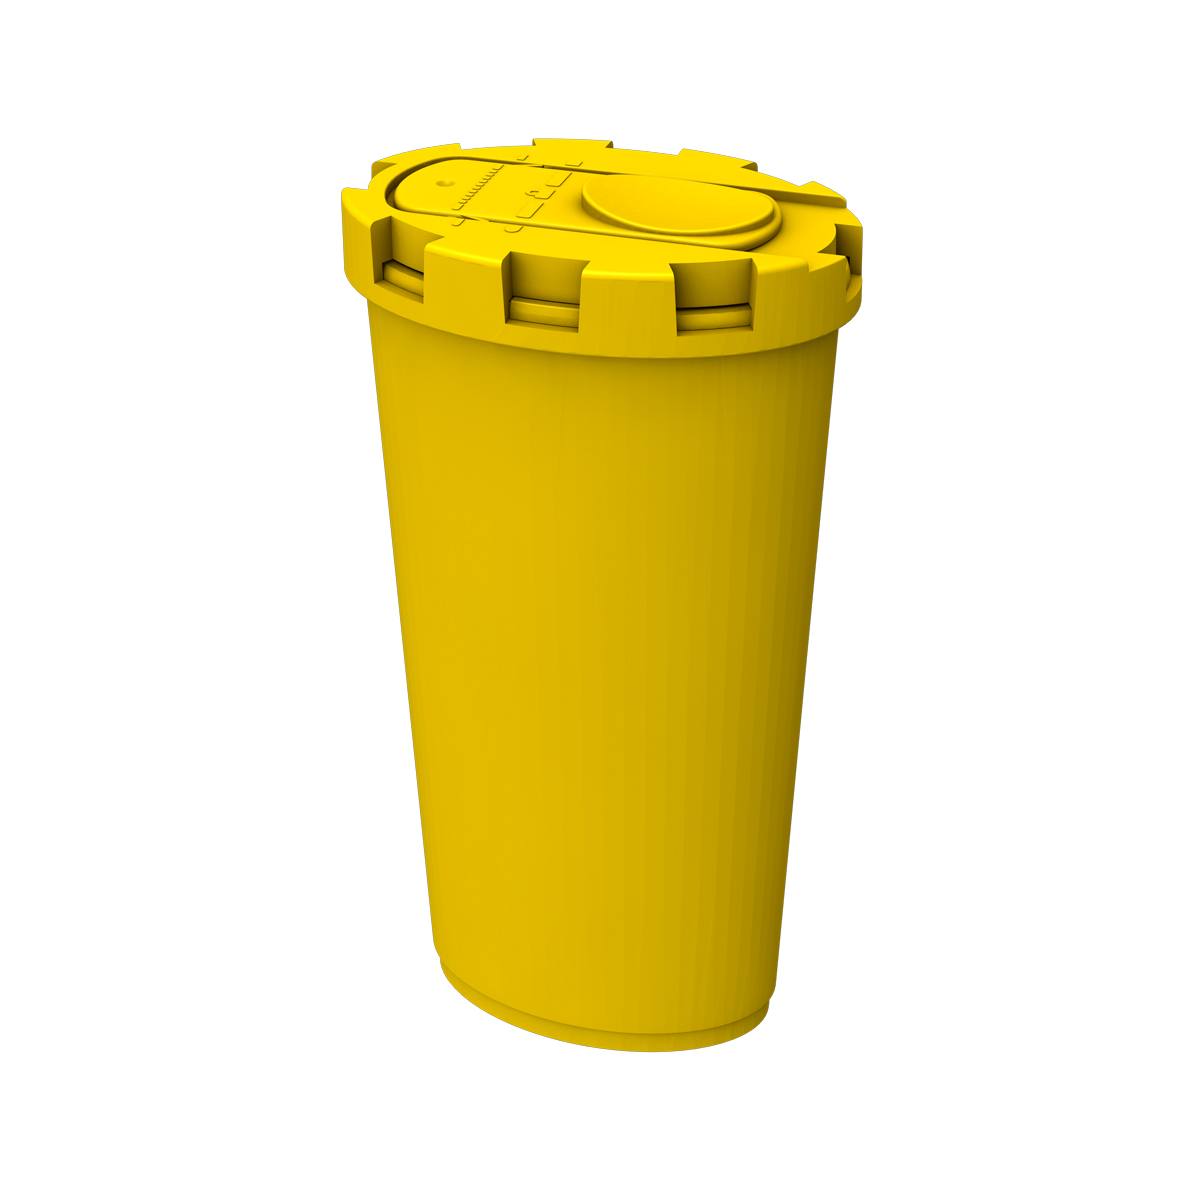 NEW COMPACT SHARPS BIN (YELLOW)